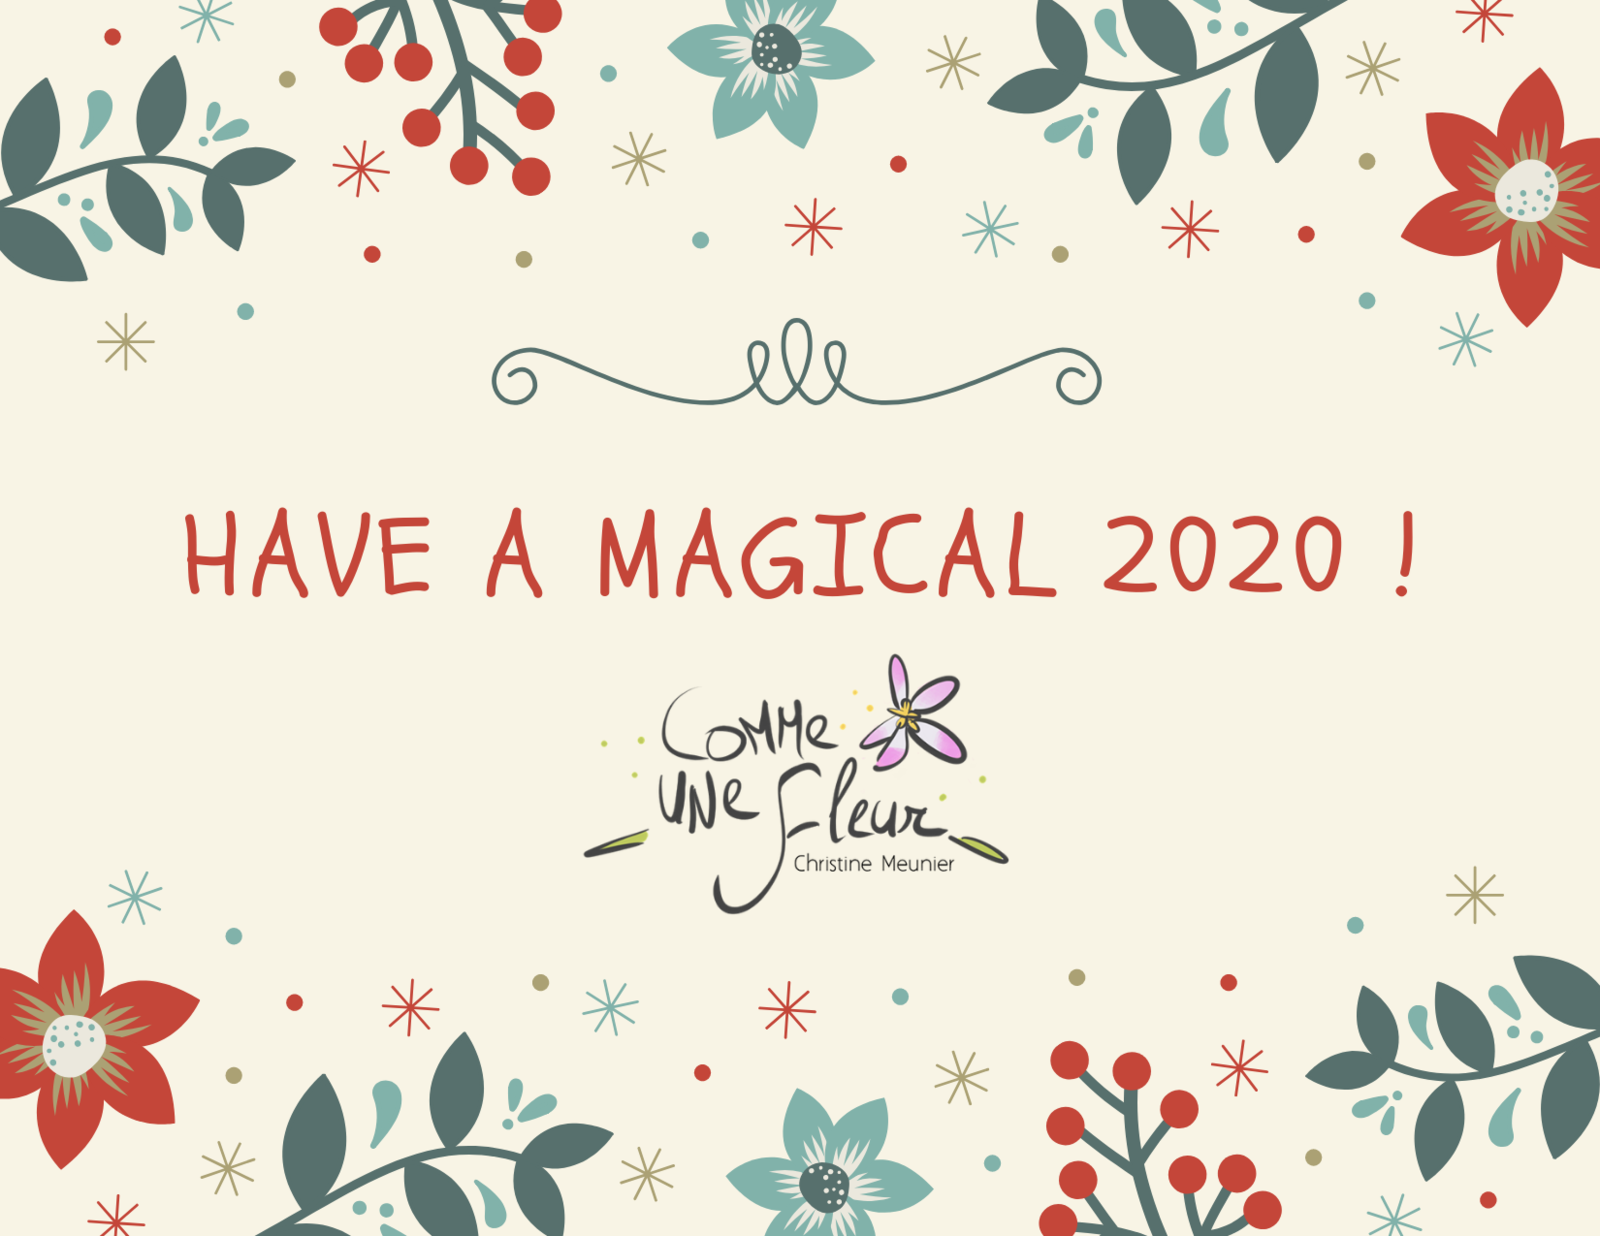 Have a MAGICAL 2020 !